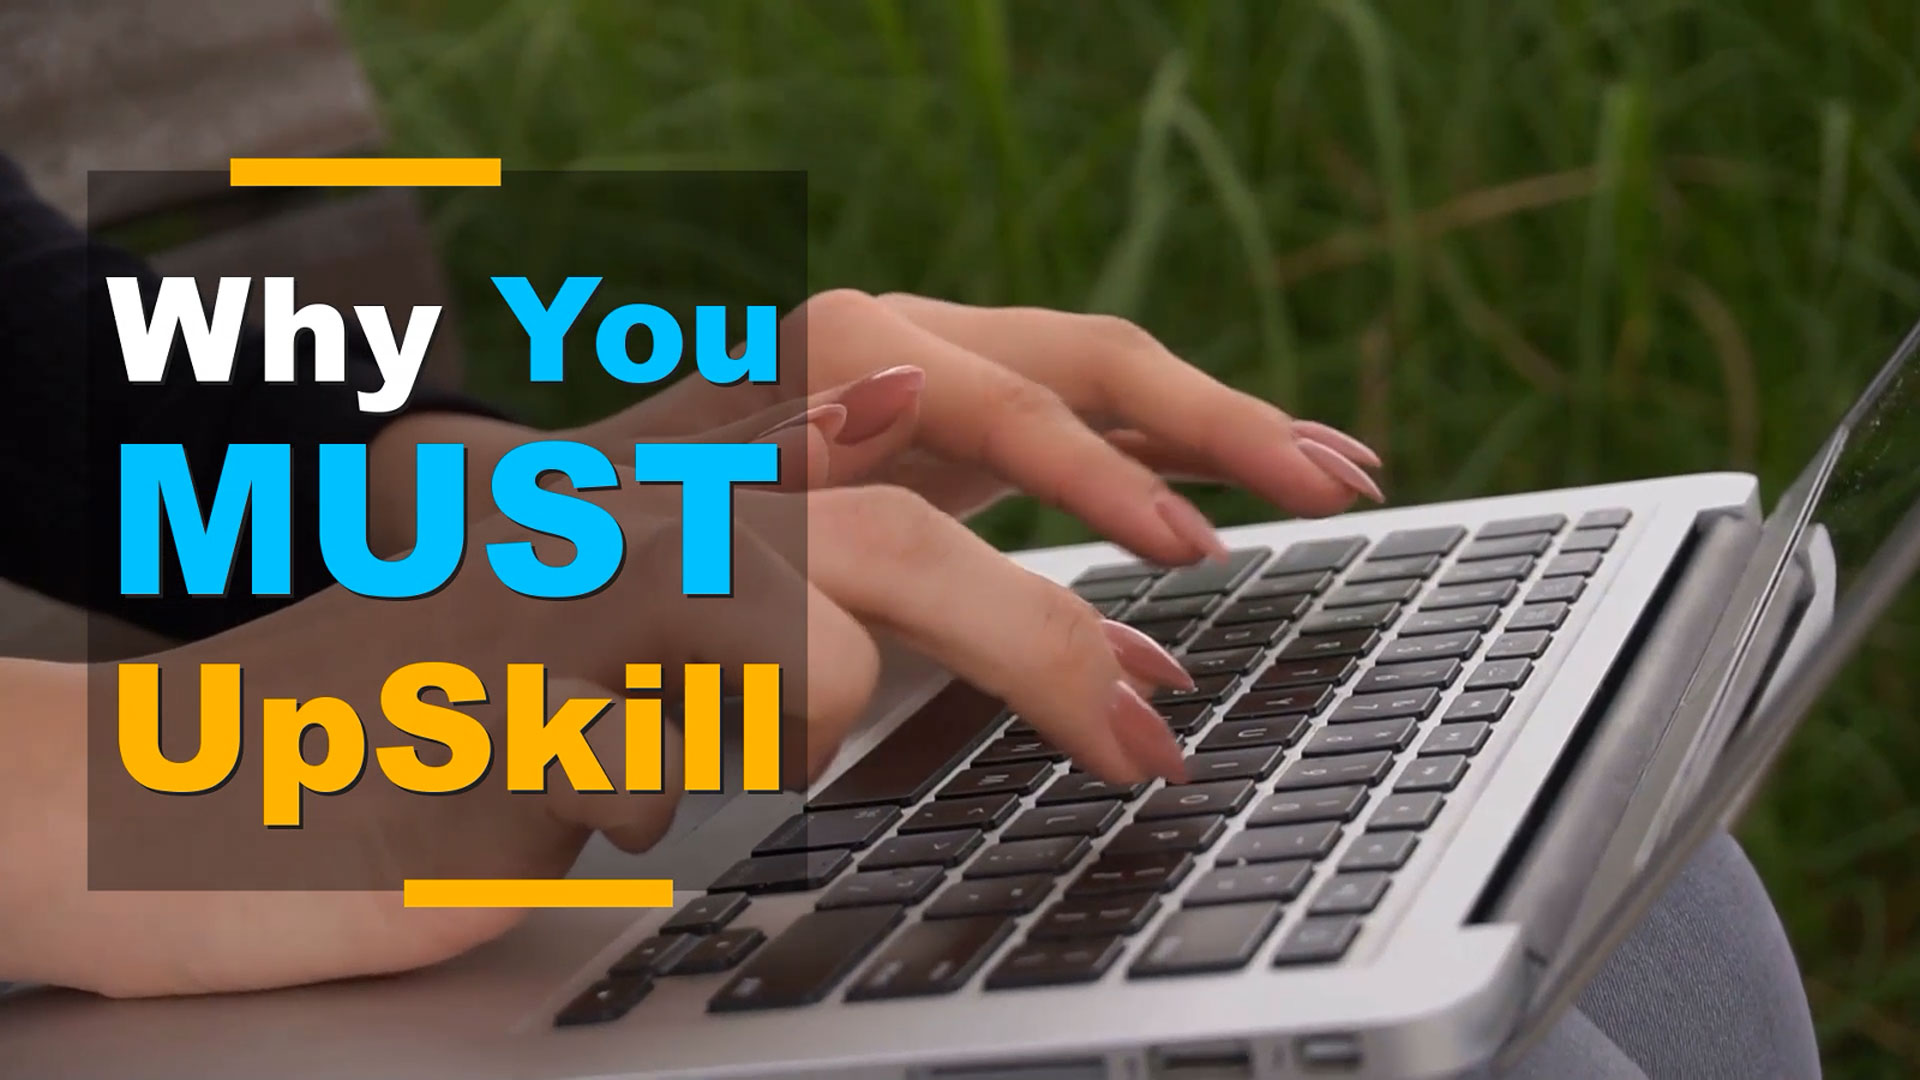 Why You MUST Upskill